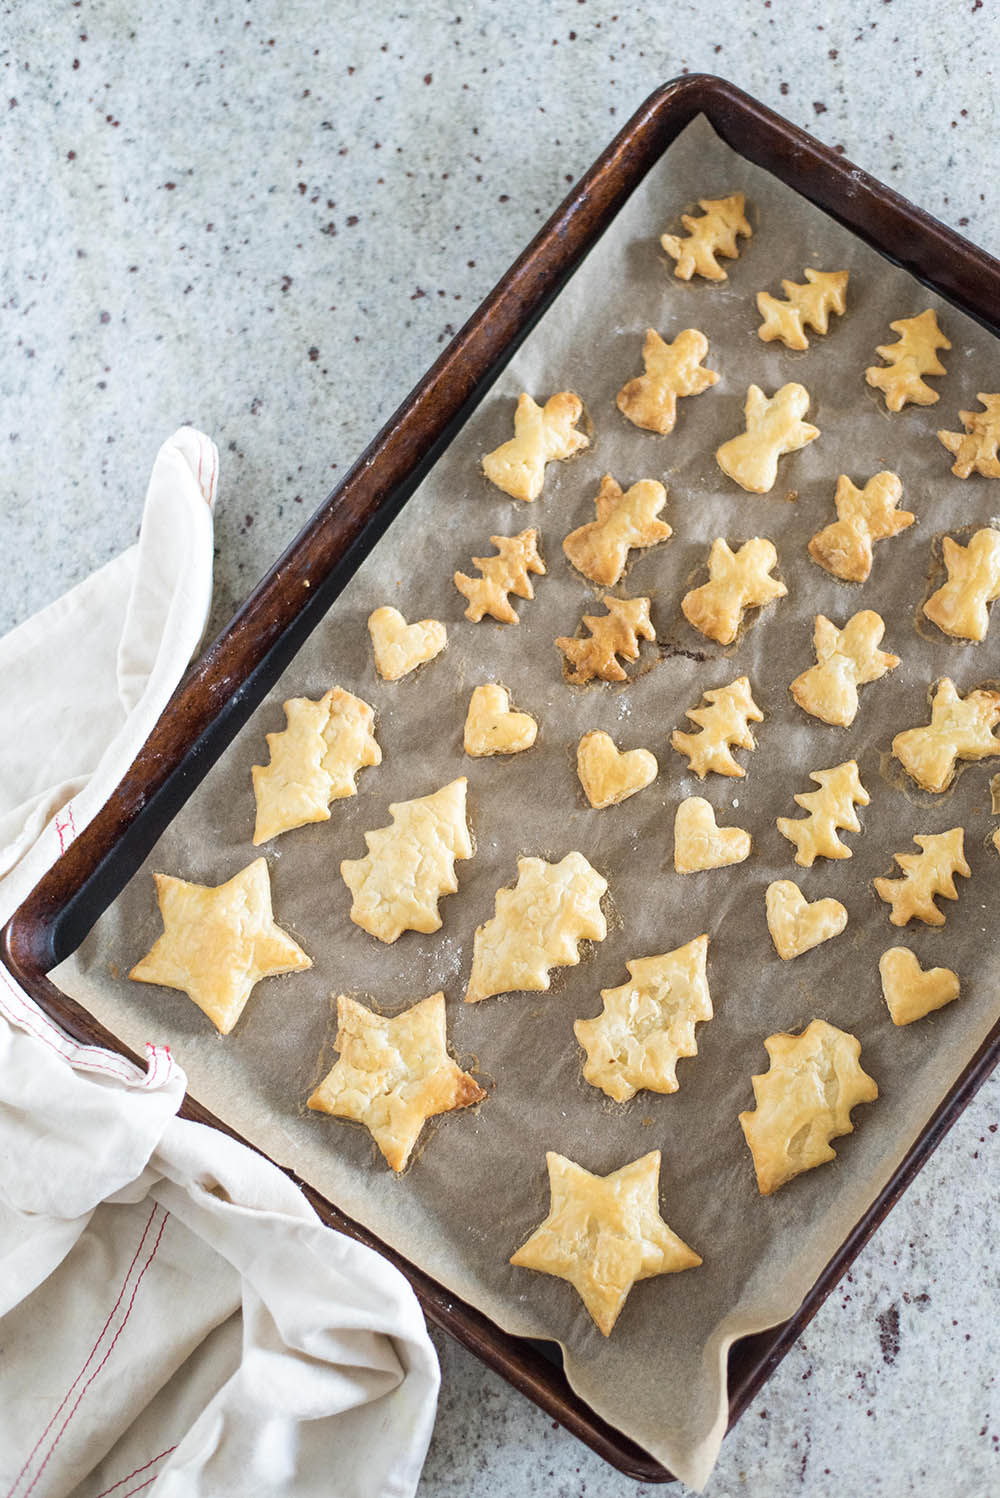 A pan of baked pie dough cut into shapes.